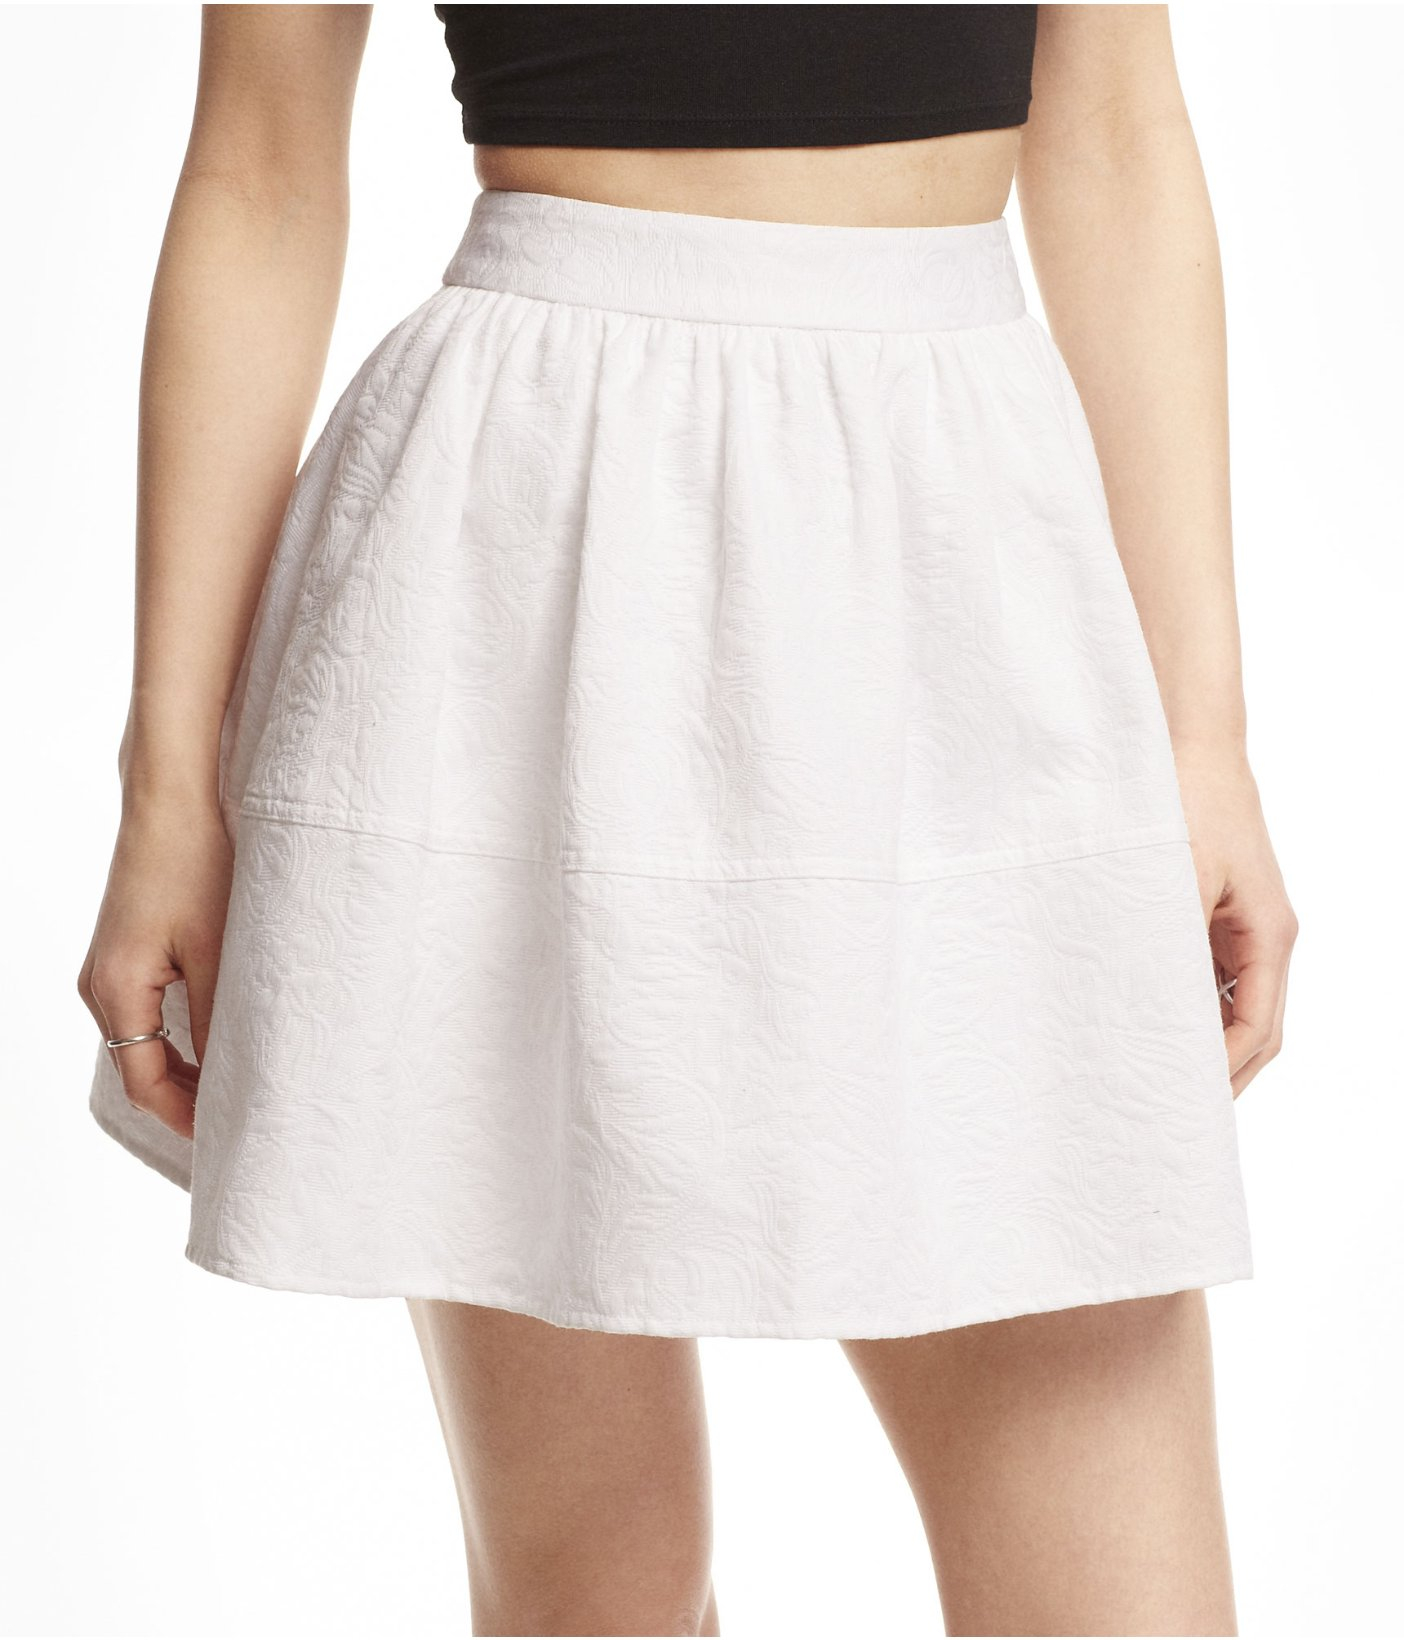 express high waist jacquard skirt in white true